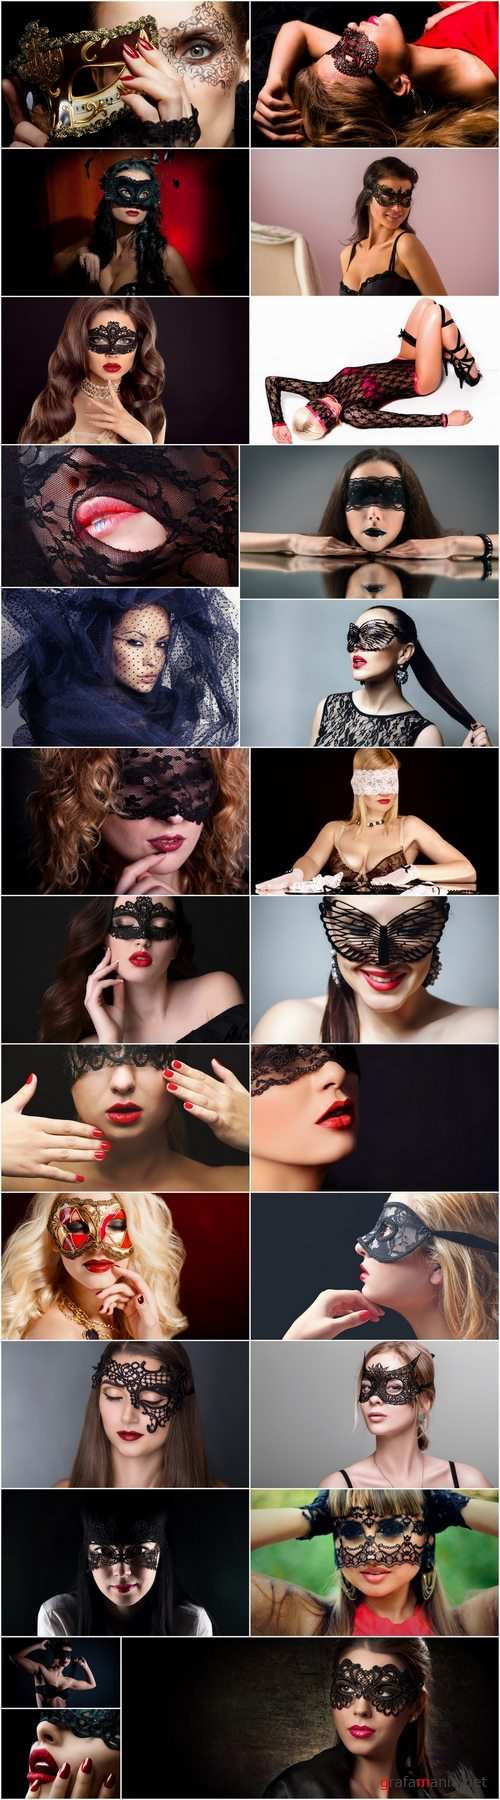 Woman girl in a veil mask mysterious face makeup lips 25 HQ Jpeg